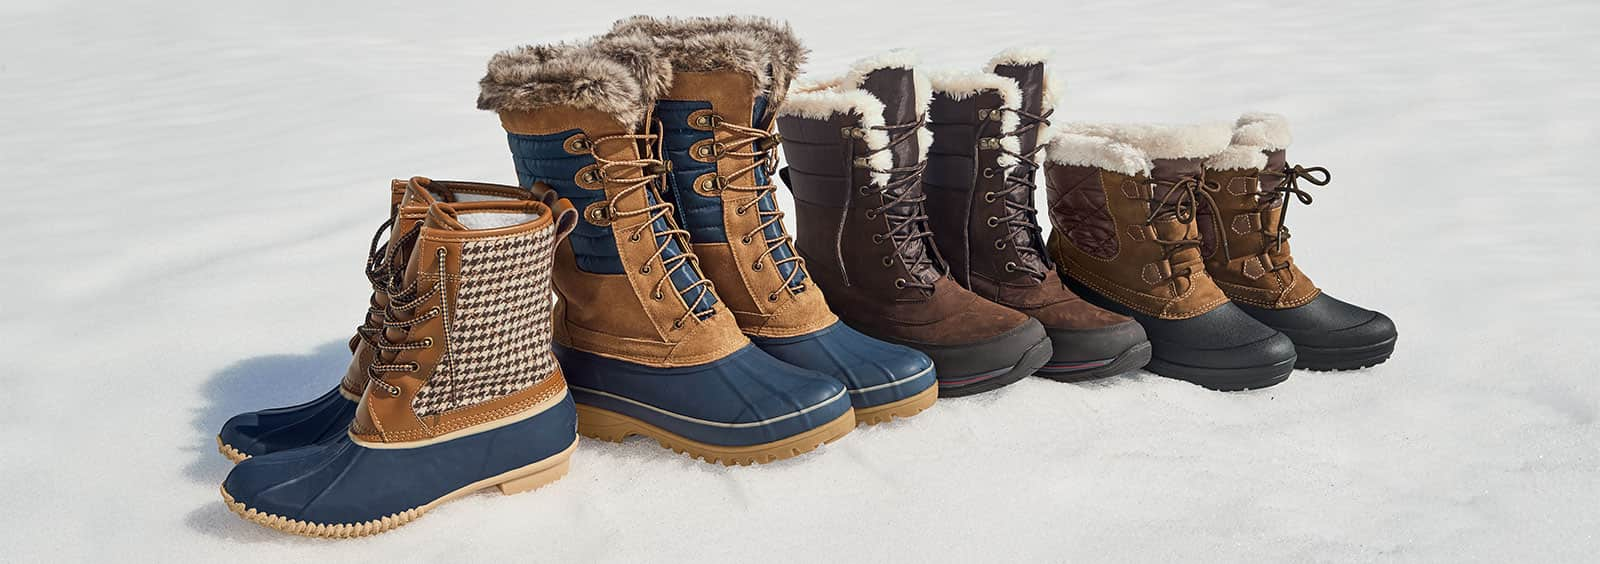 Boot Basics: What to Wear Based on the Forecast